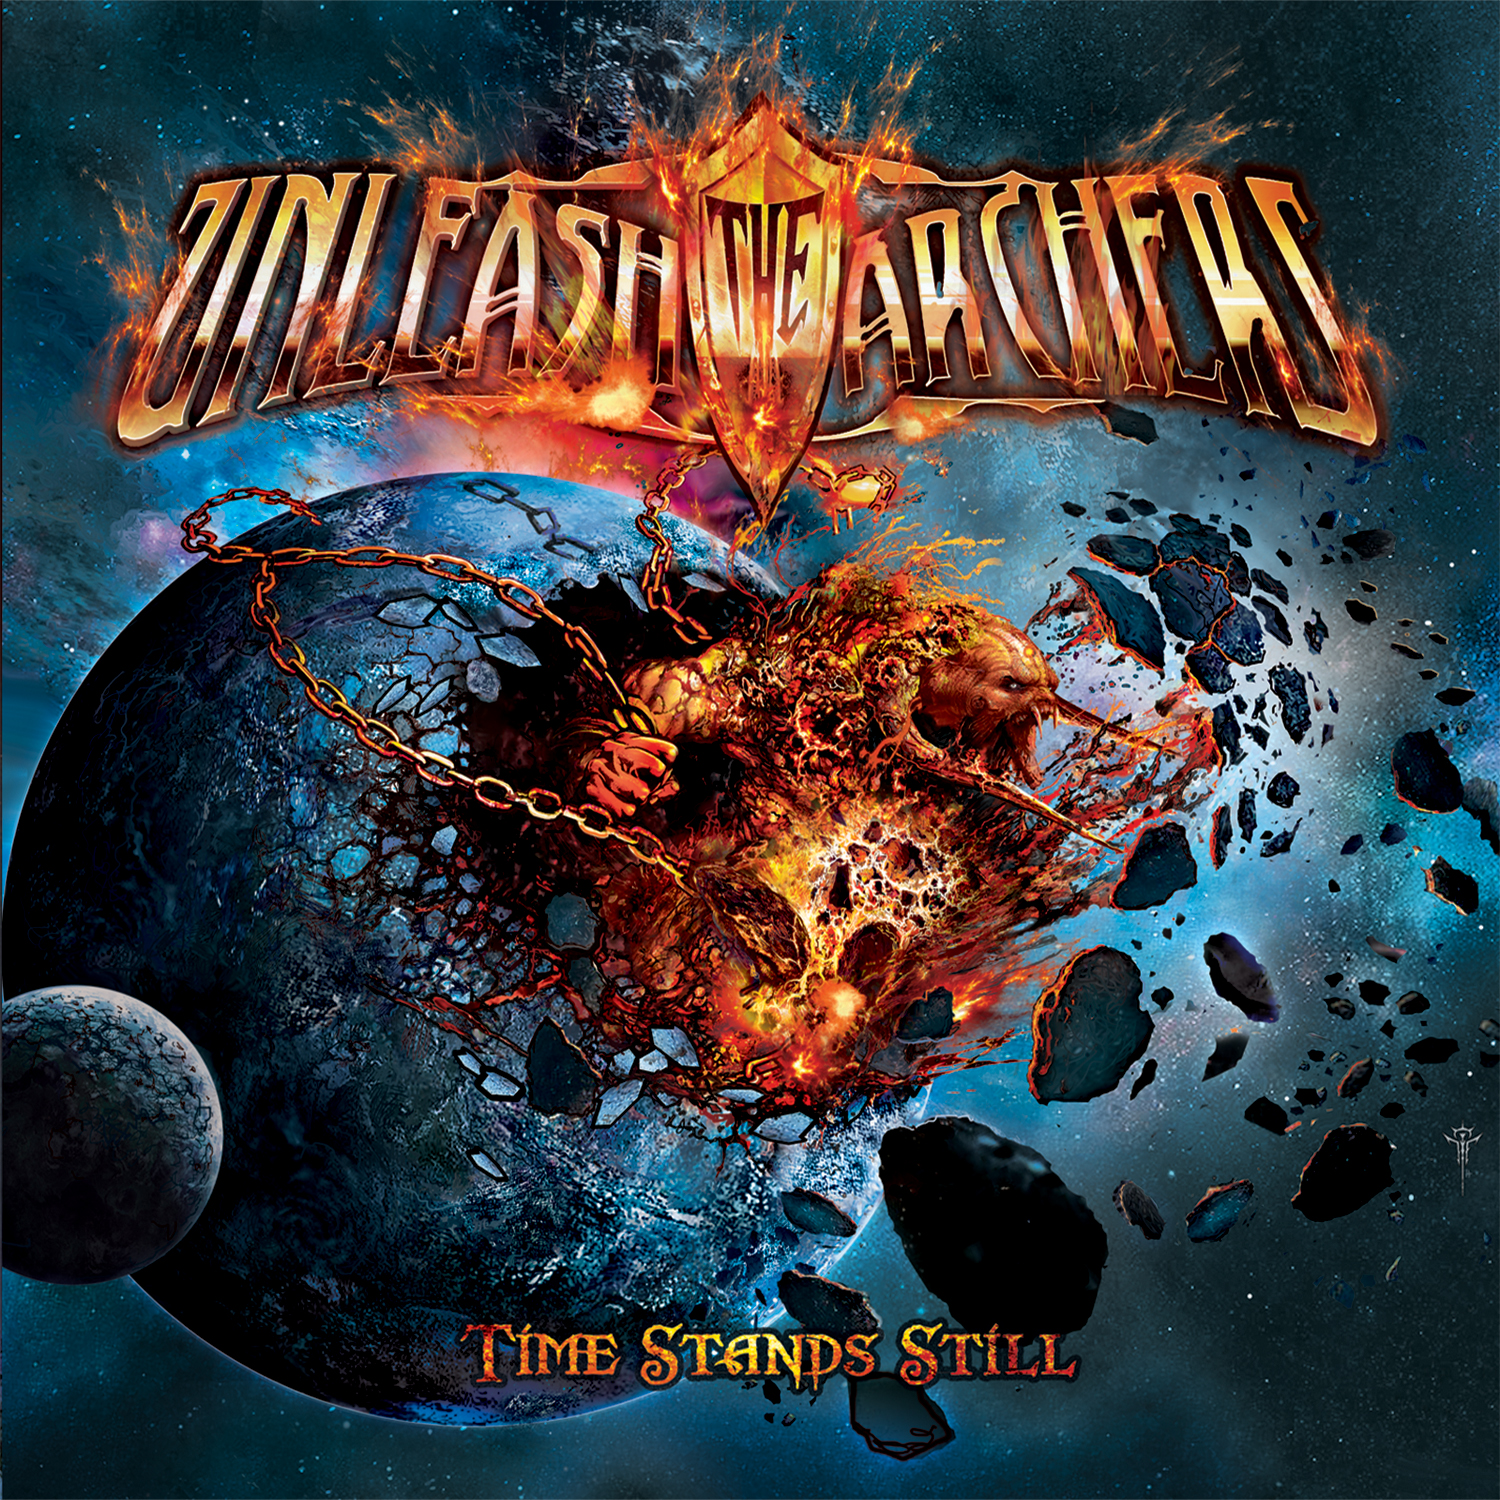 Unleash the Archers – Time Stands Still Review